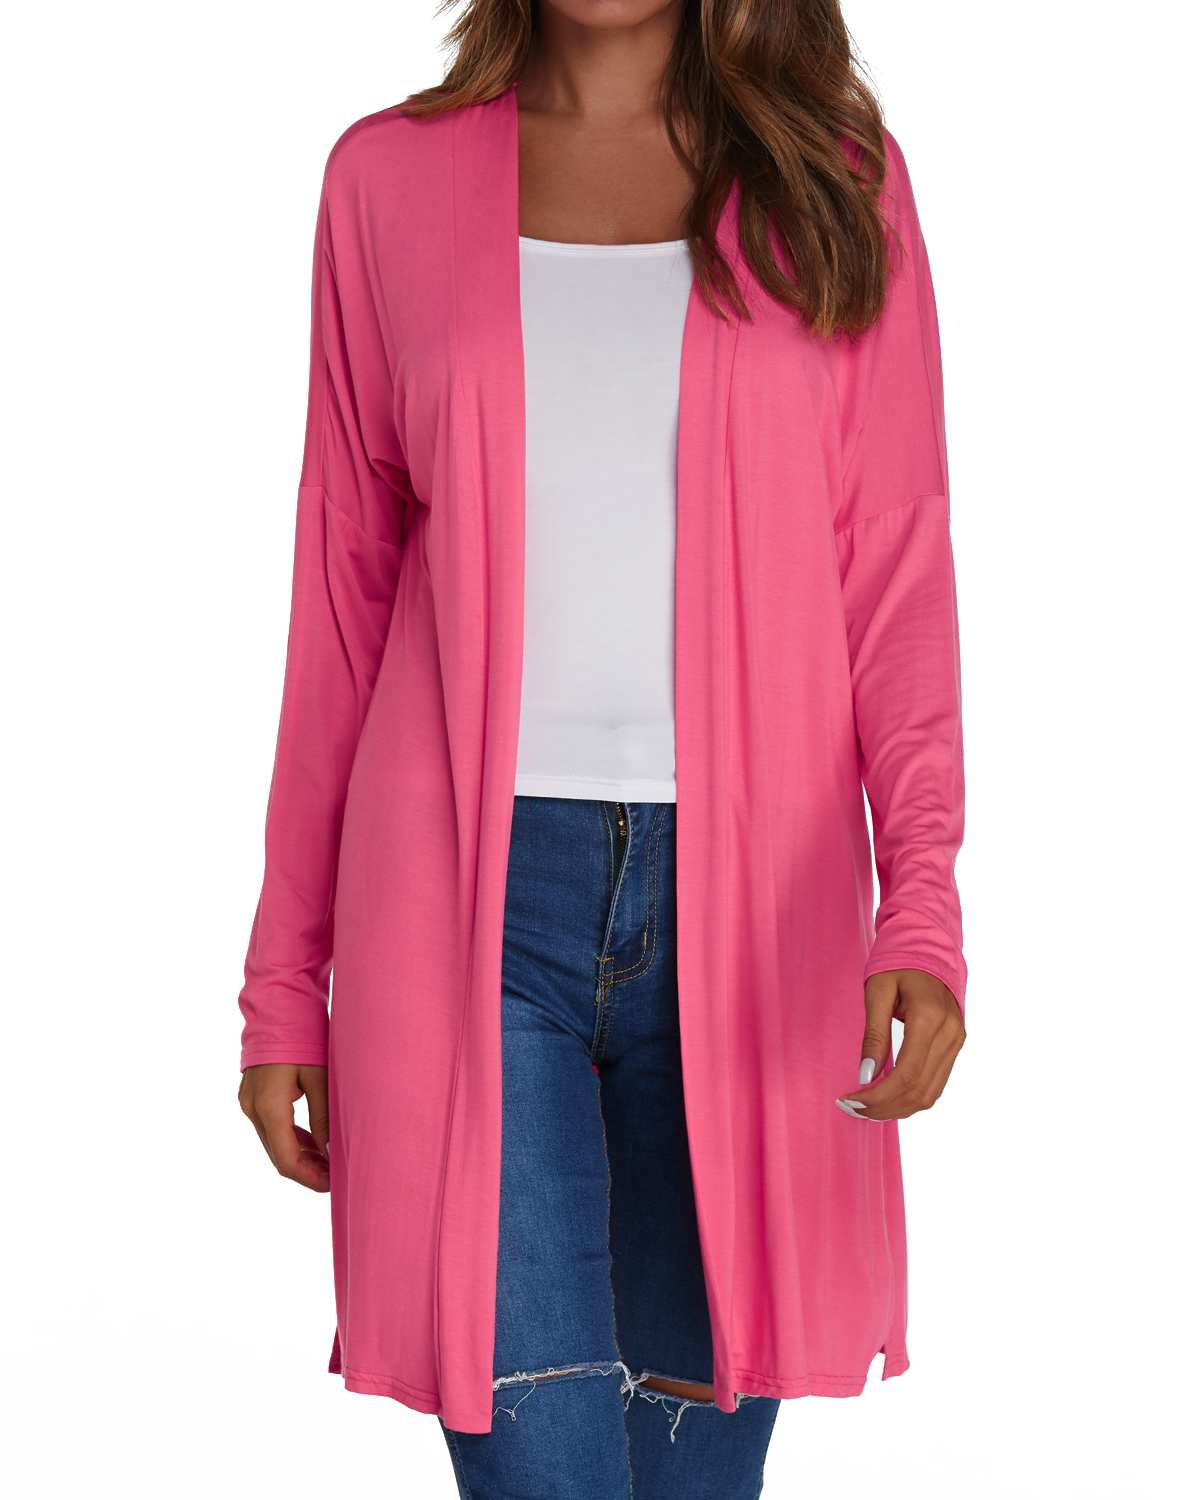 Plus Size Cardigan Coats Women Solid Split   Trench   Autumn Casual Loose Long Sleeve Long Straight Cardigan Female Sunscreen Tops